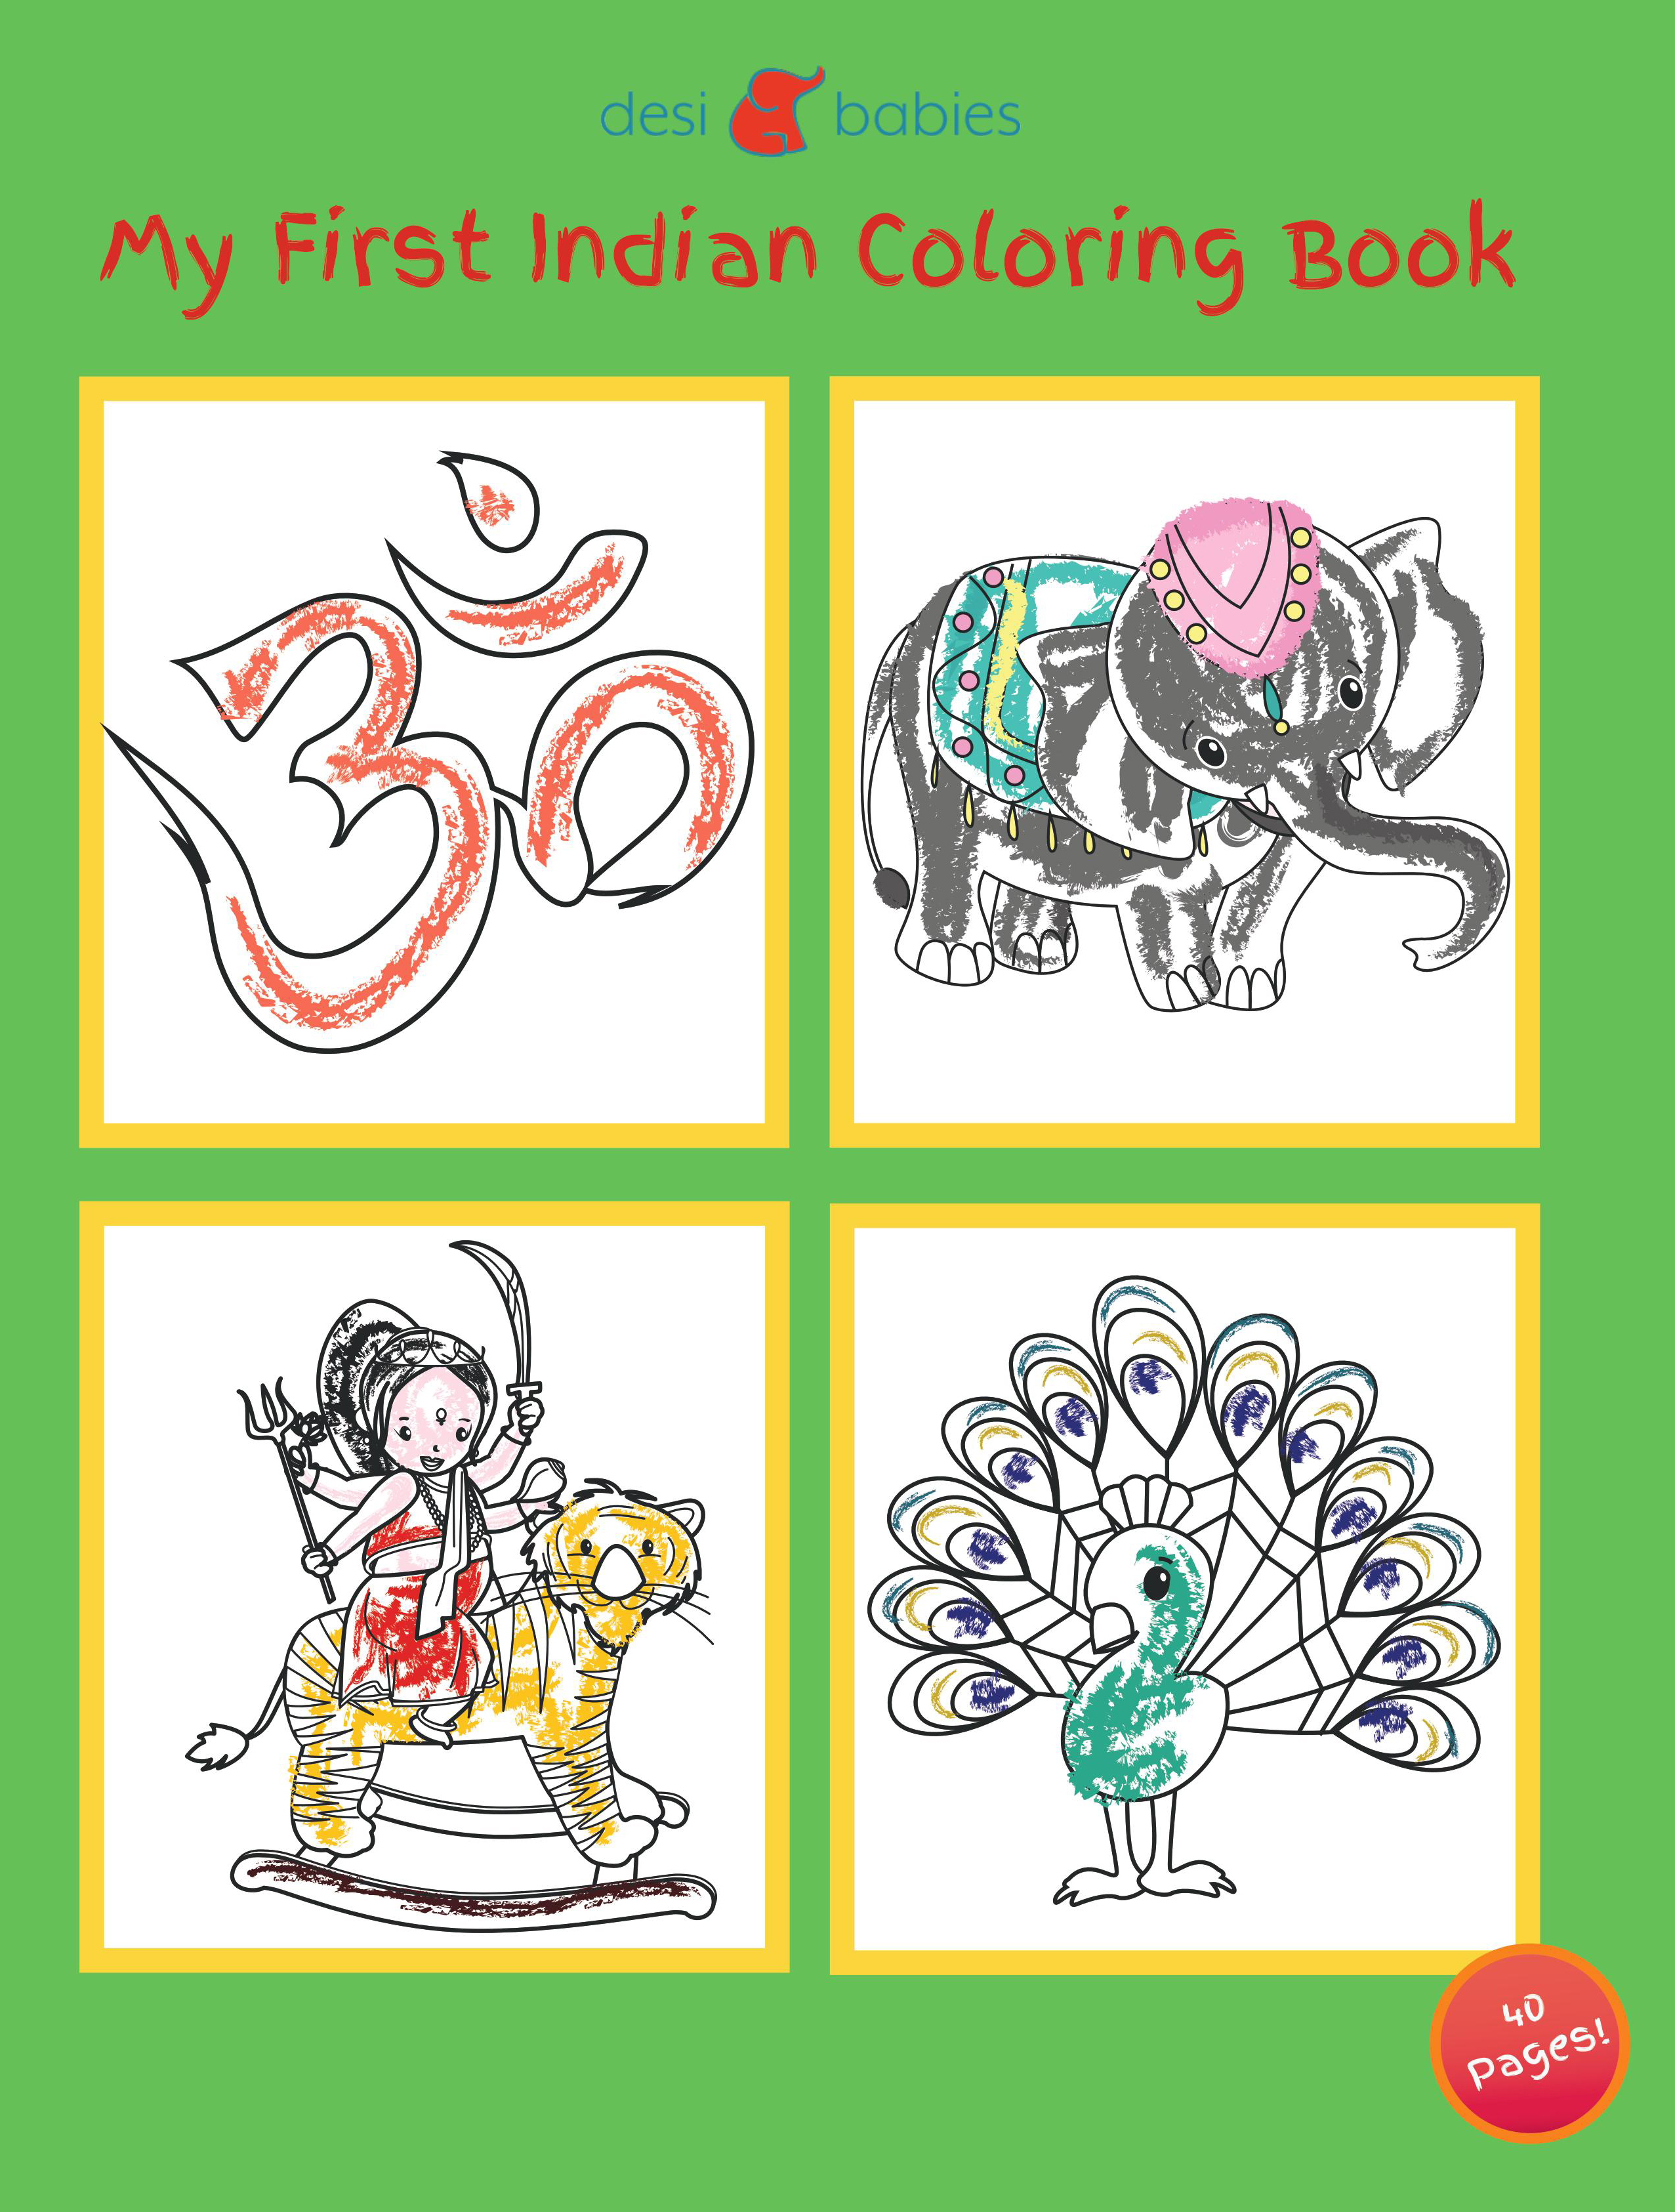 Delighted Physiology Coloring Book Tiny Doodle Coloring Book Clean Alphabet Coloring Book The Big Coloring Book Of S Old Paisley Designs Coloring Book YellowWedding Coloring Book Template Desi Babies   Kids Books And More   My First Indian Coloring Book